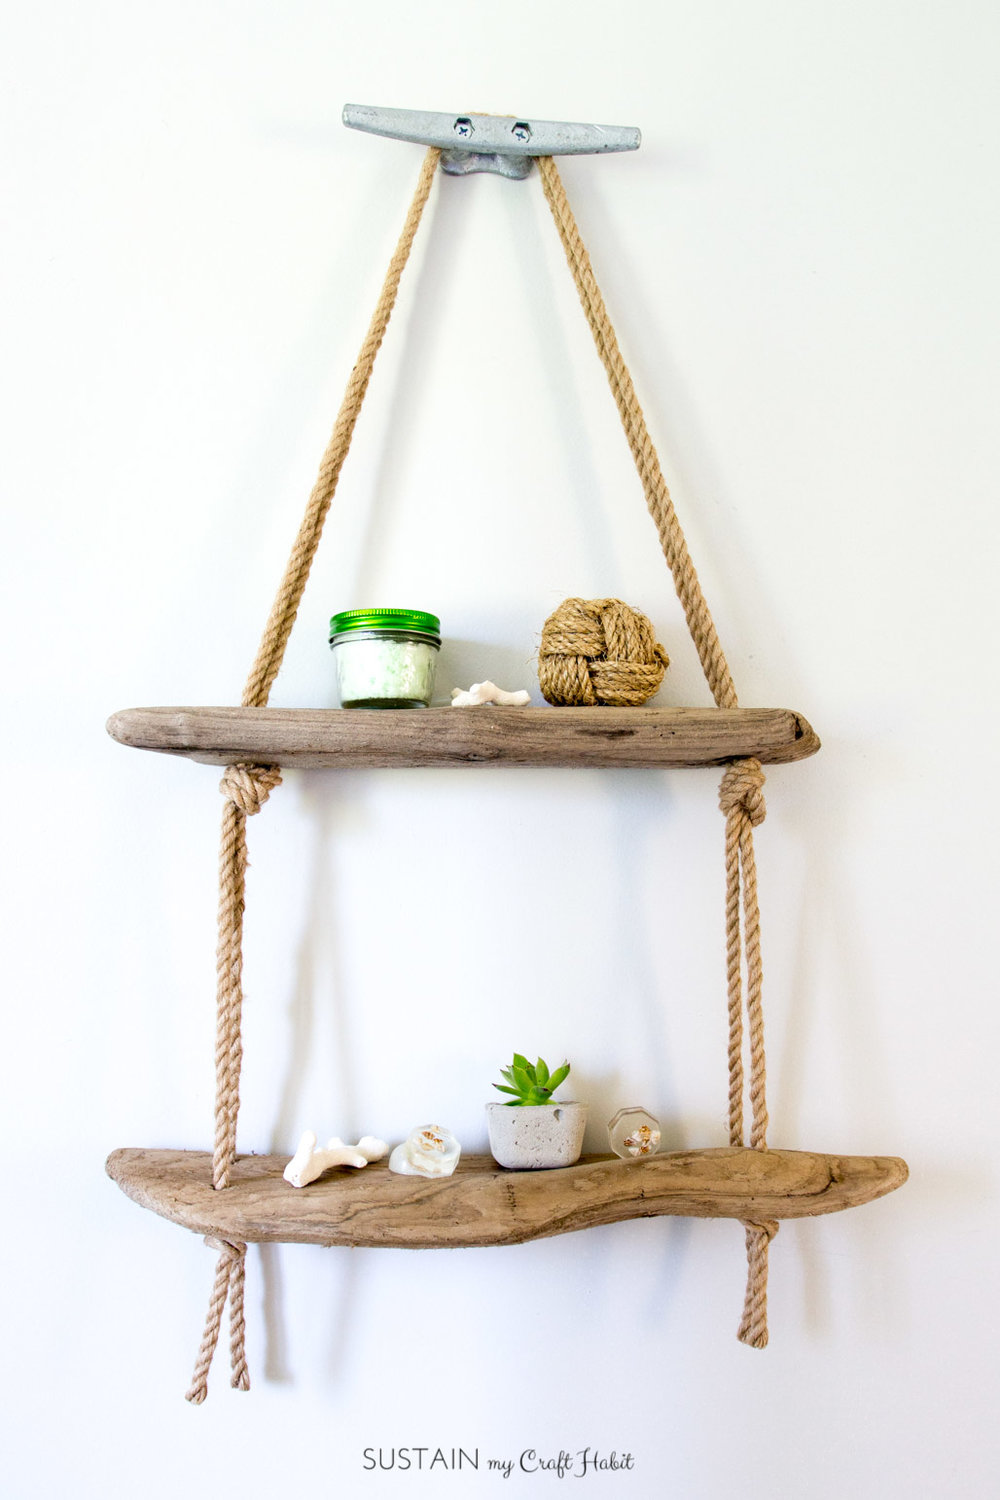 Such a fun idea to make for a beach themed bathroom or coastal style cottage. Use some driftwood, rope and an anvil to make this simple bathroom display idea.